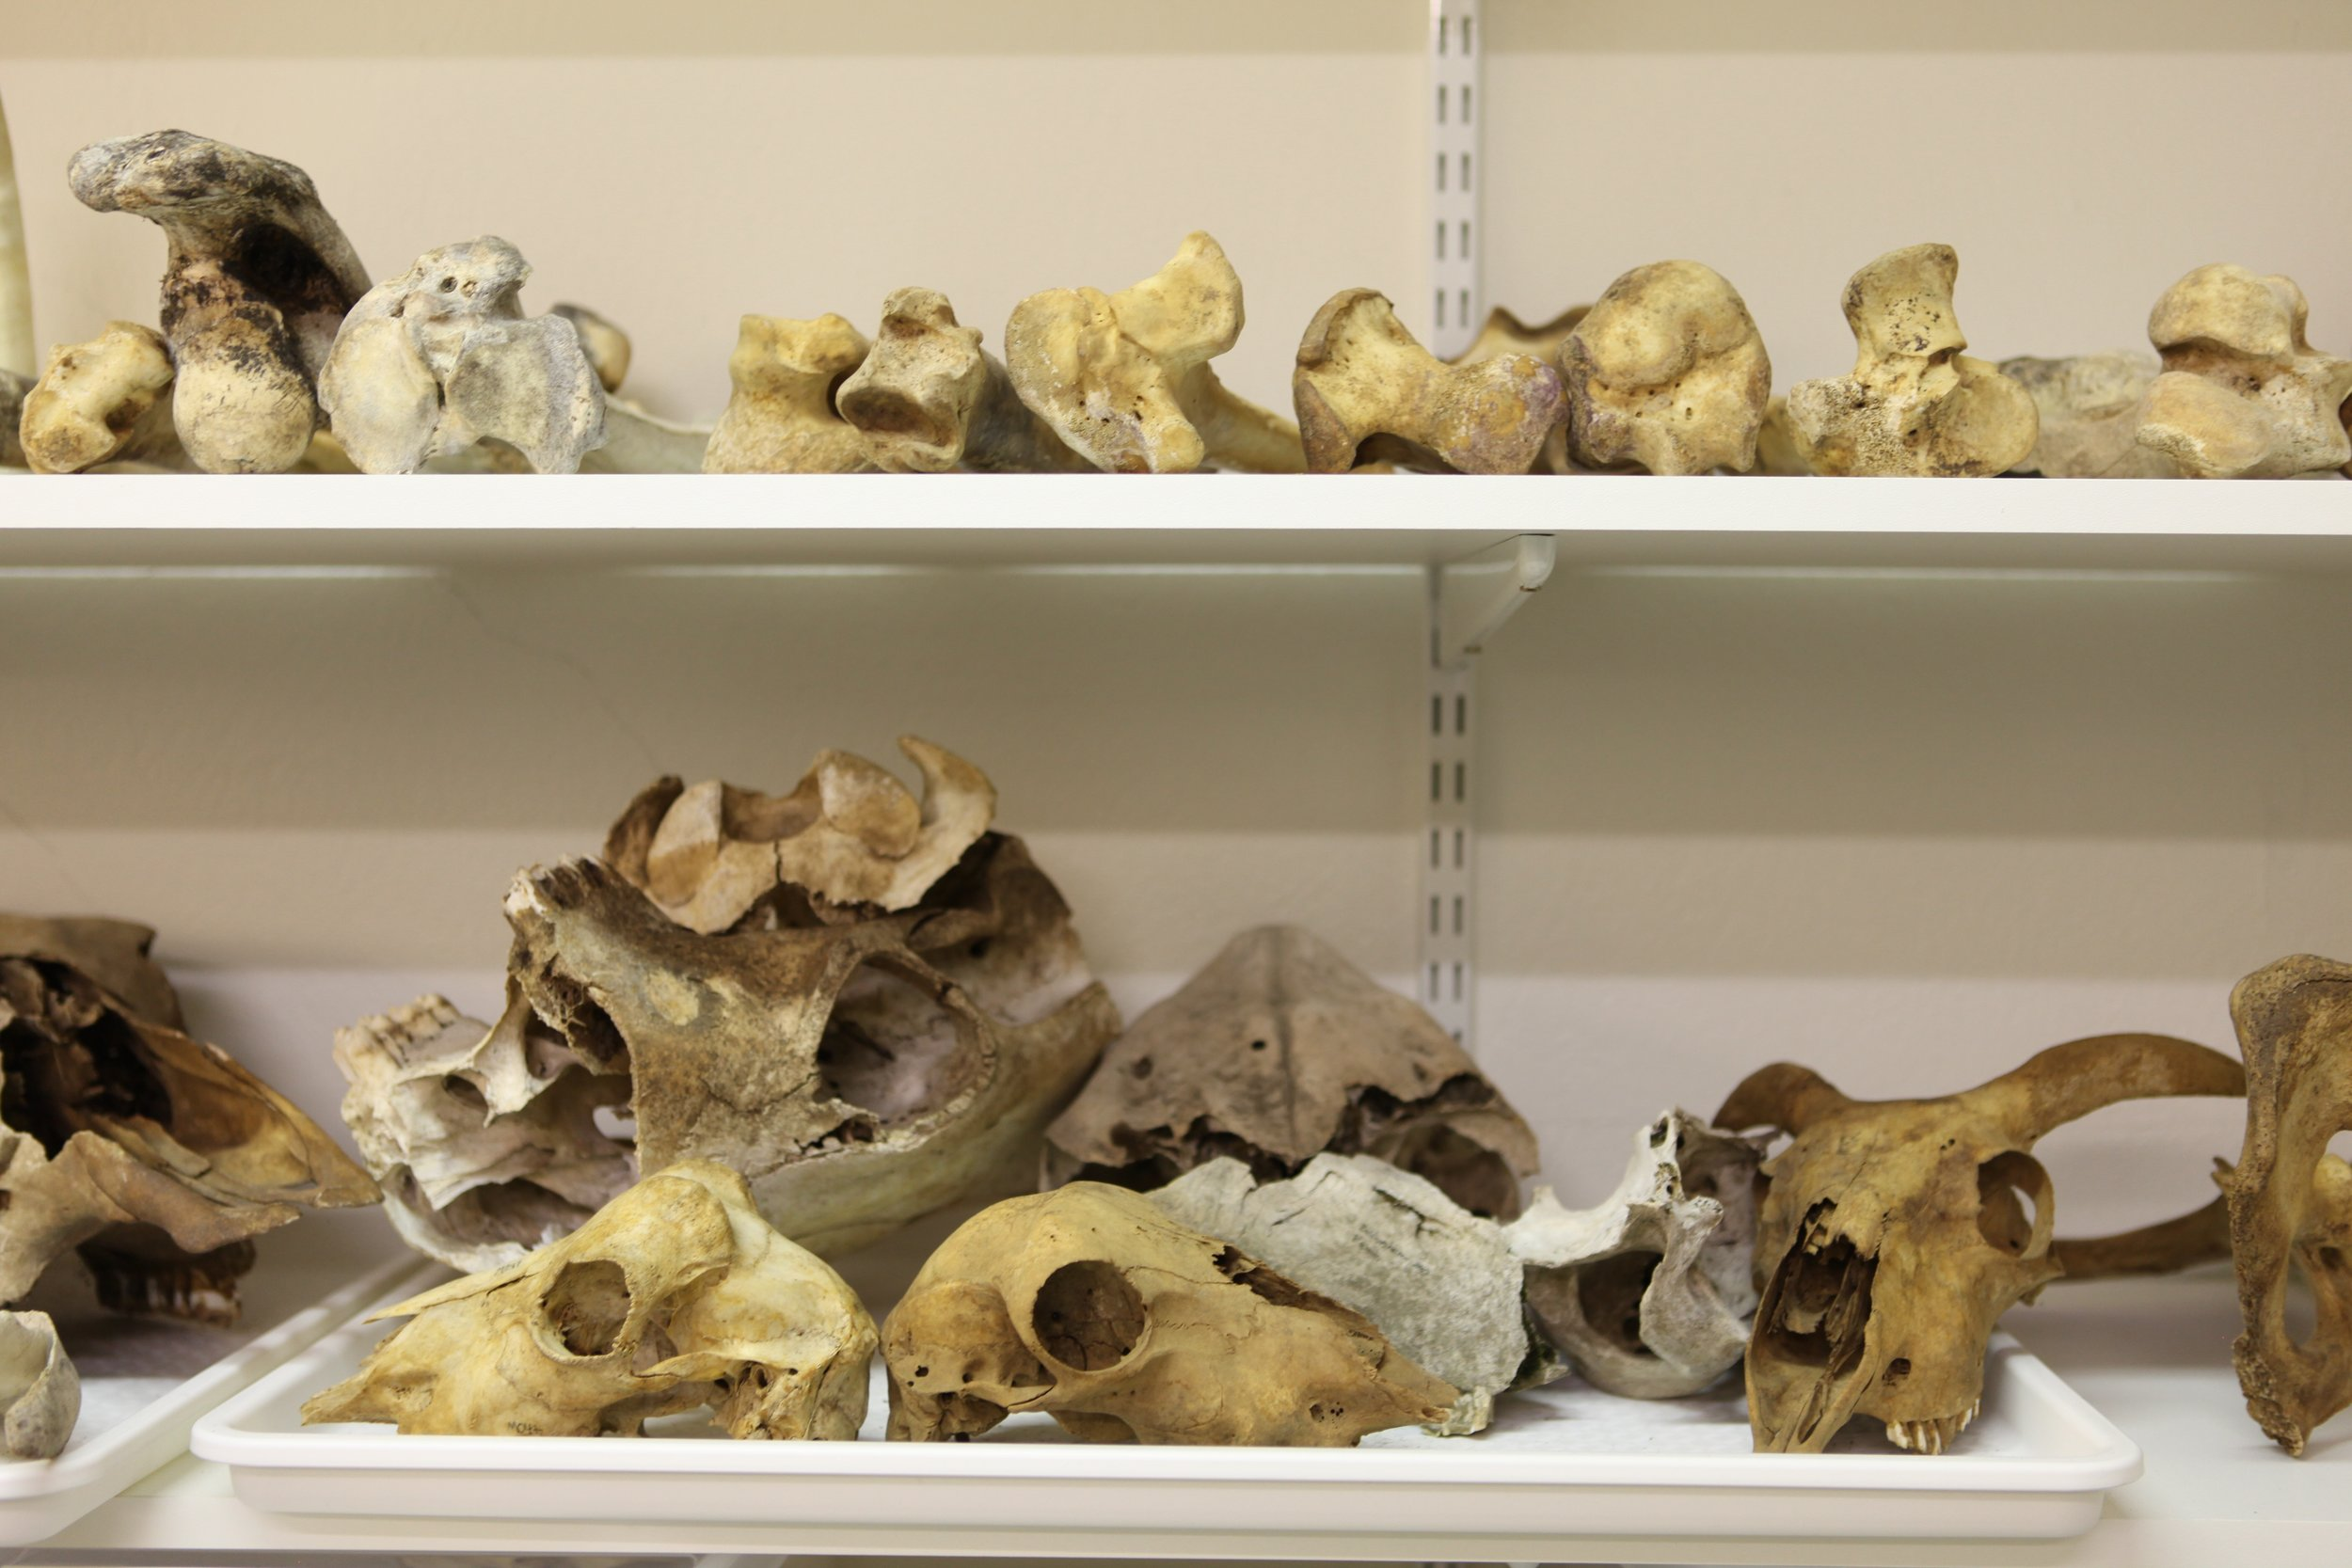 Animal bone reference collection at the Agricultural University of Iceland.